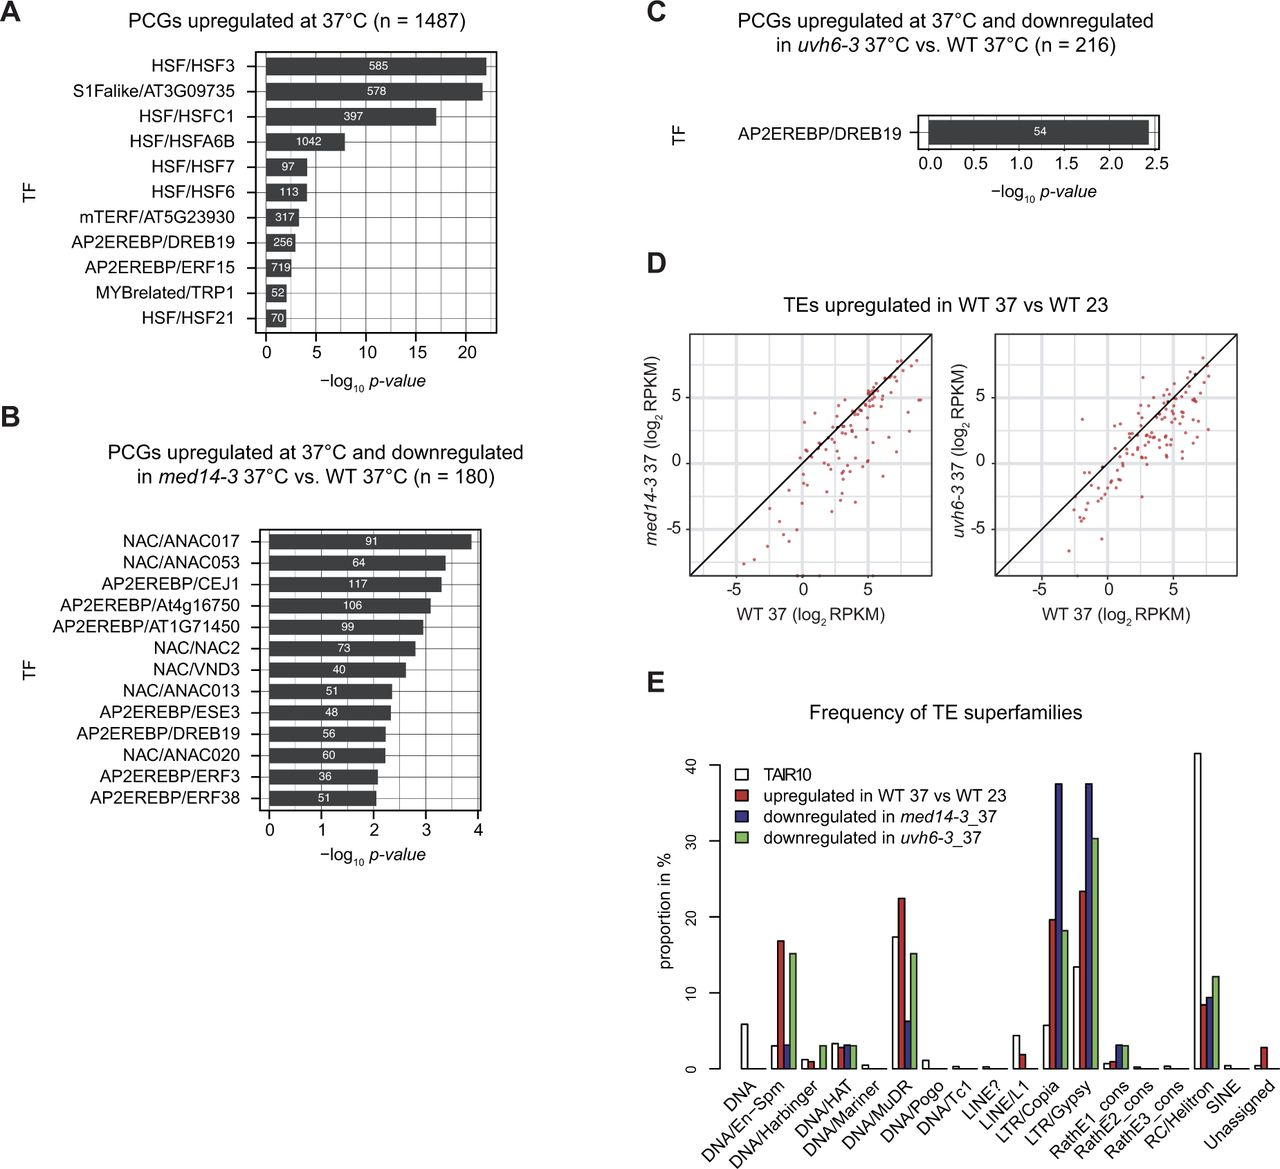 A role for MED14 and UVH6 in heterochromatin transcription